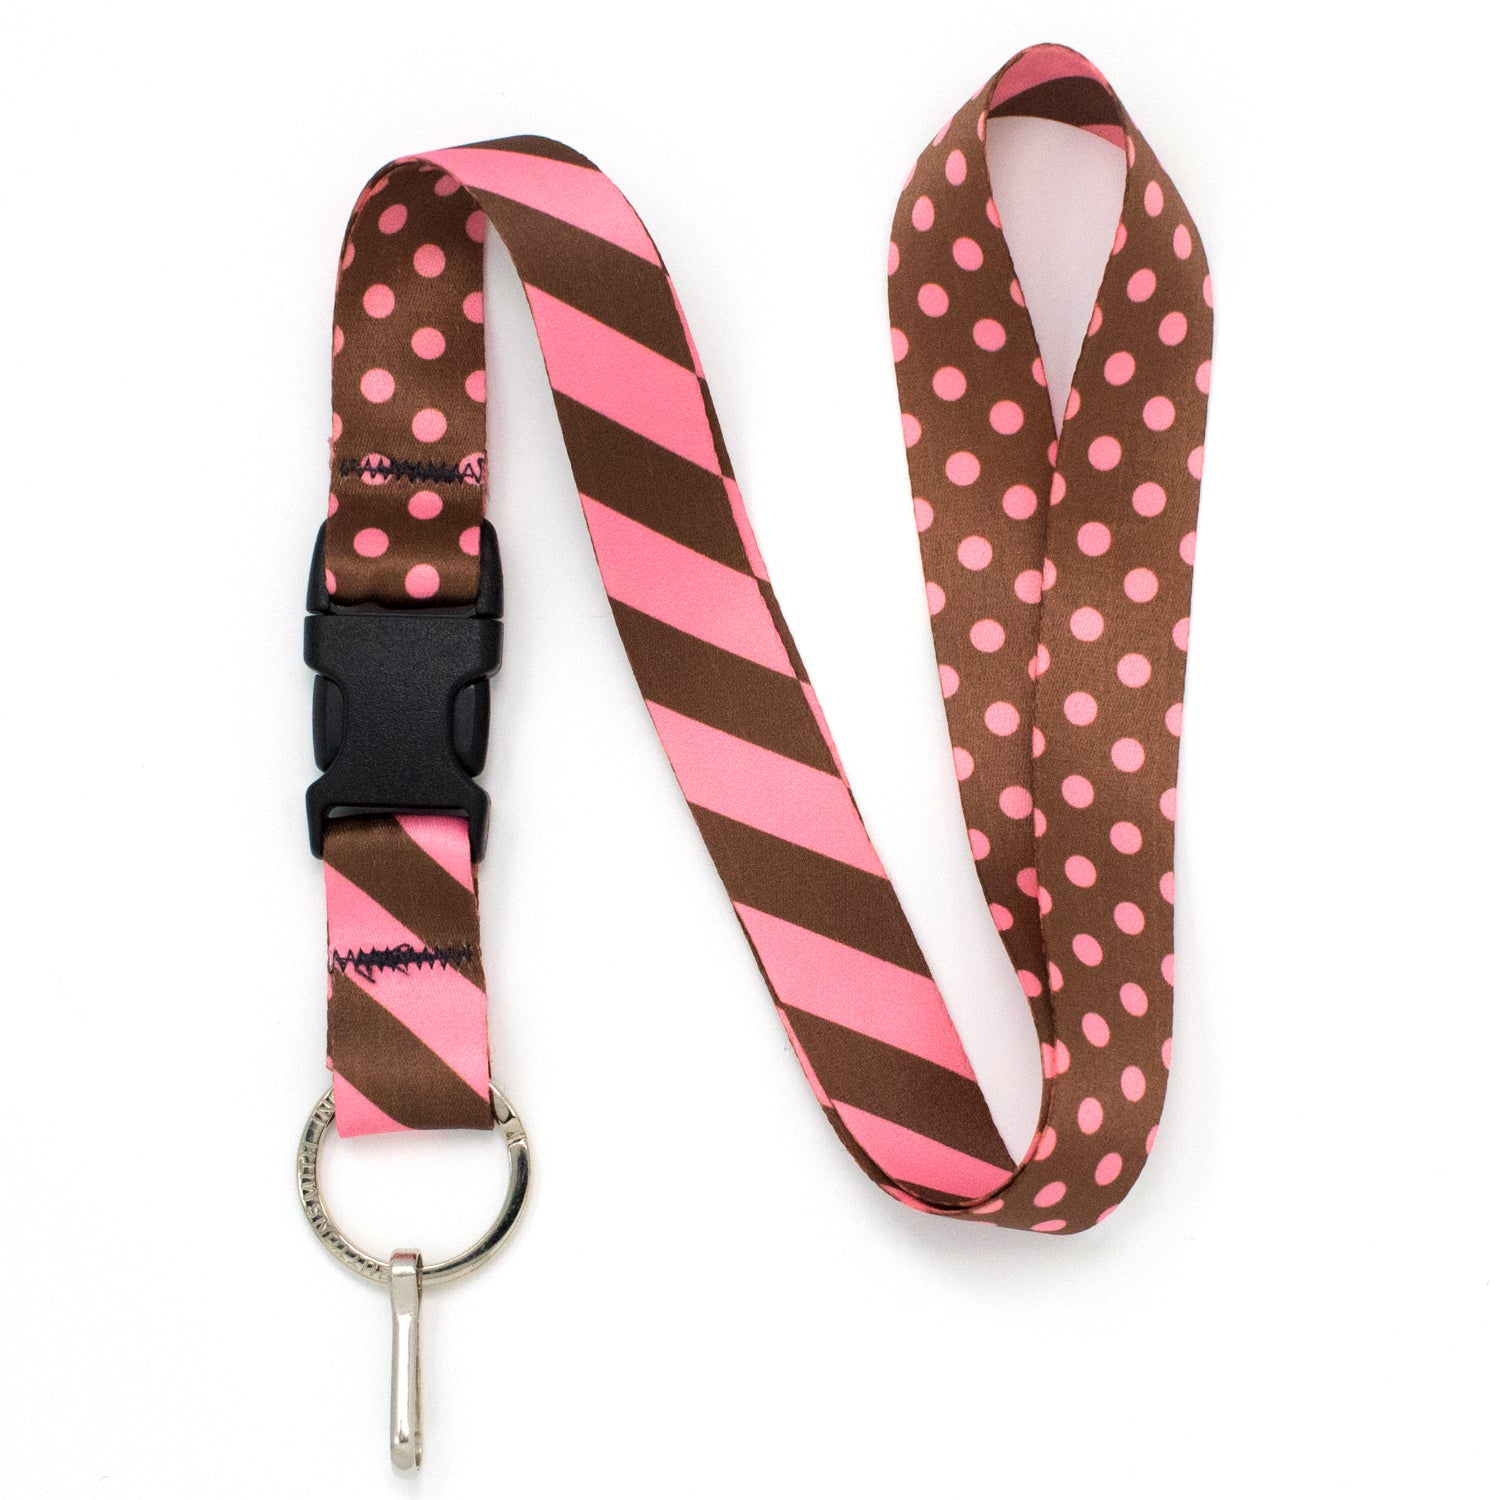 Buttonsmith Cocoa Pink Dots Lanyard - Made in USA